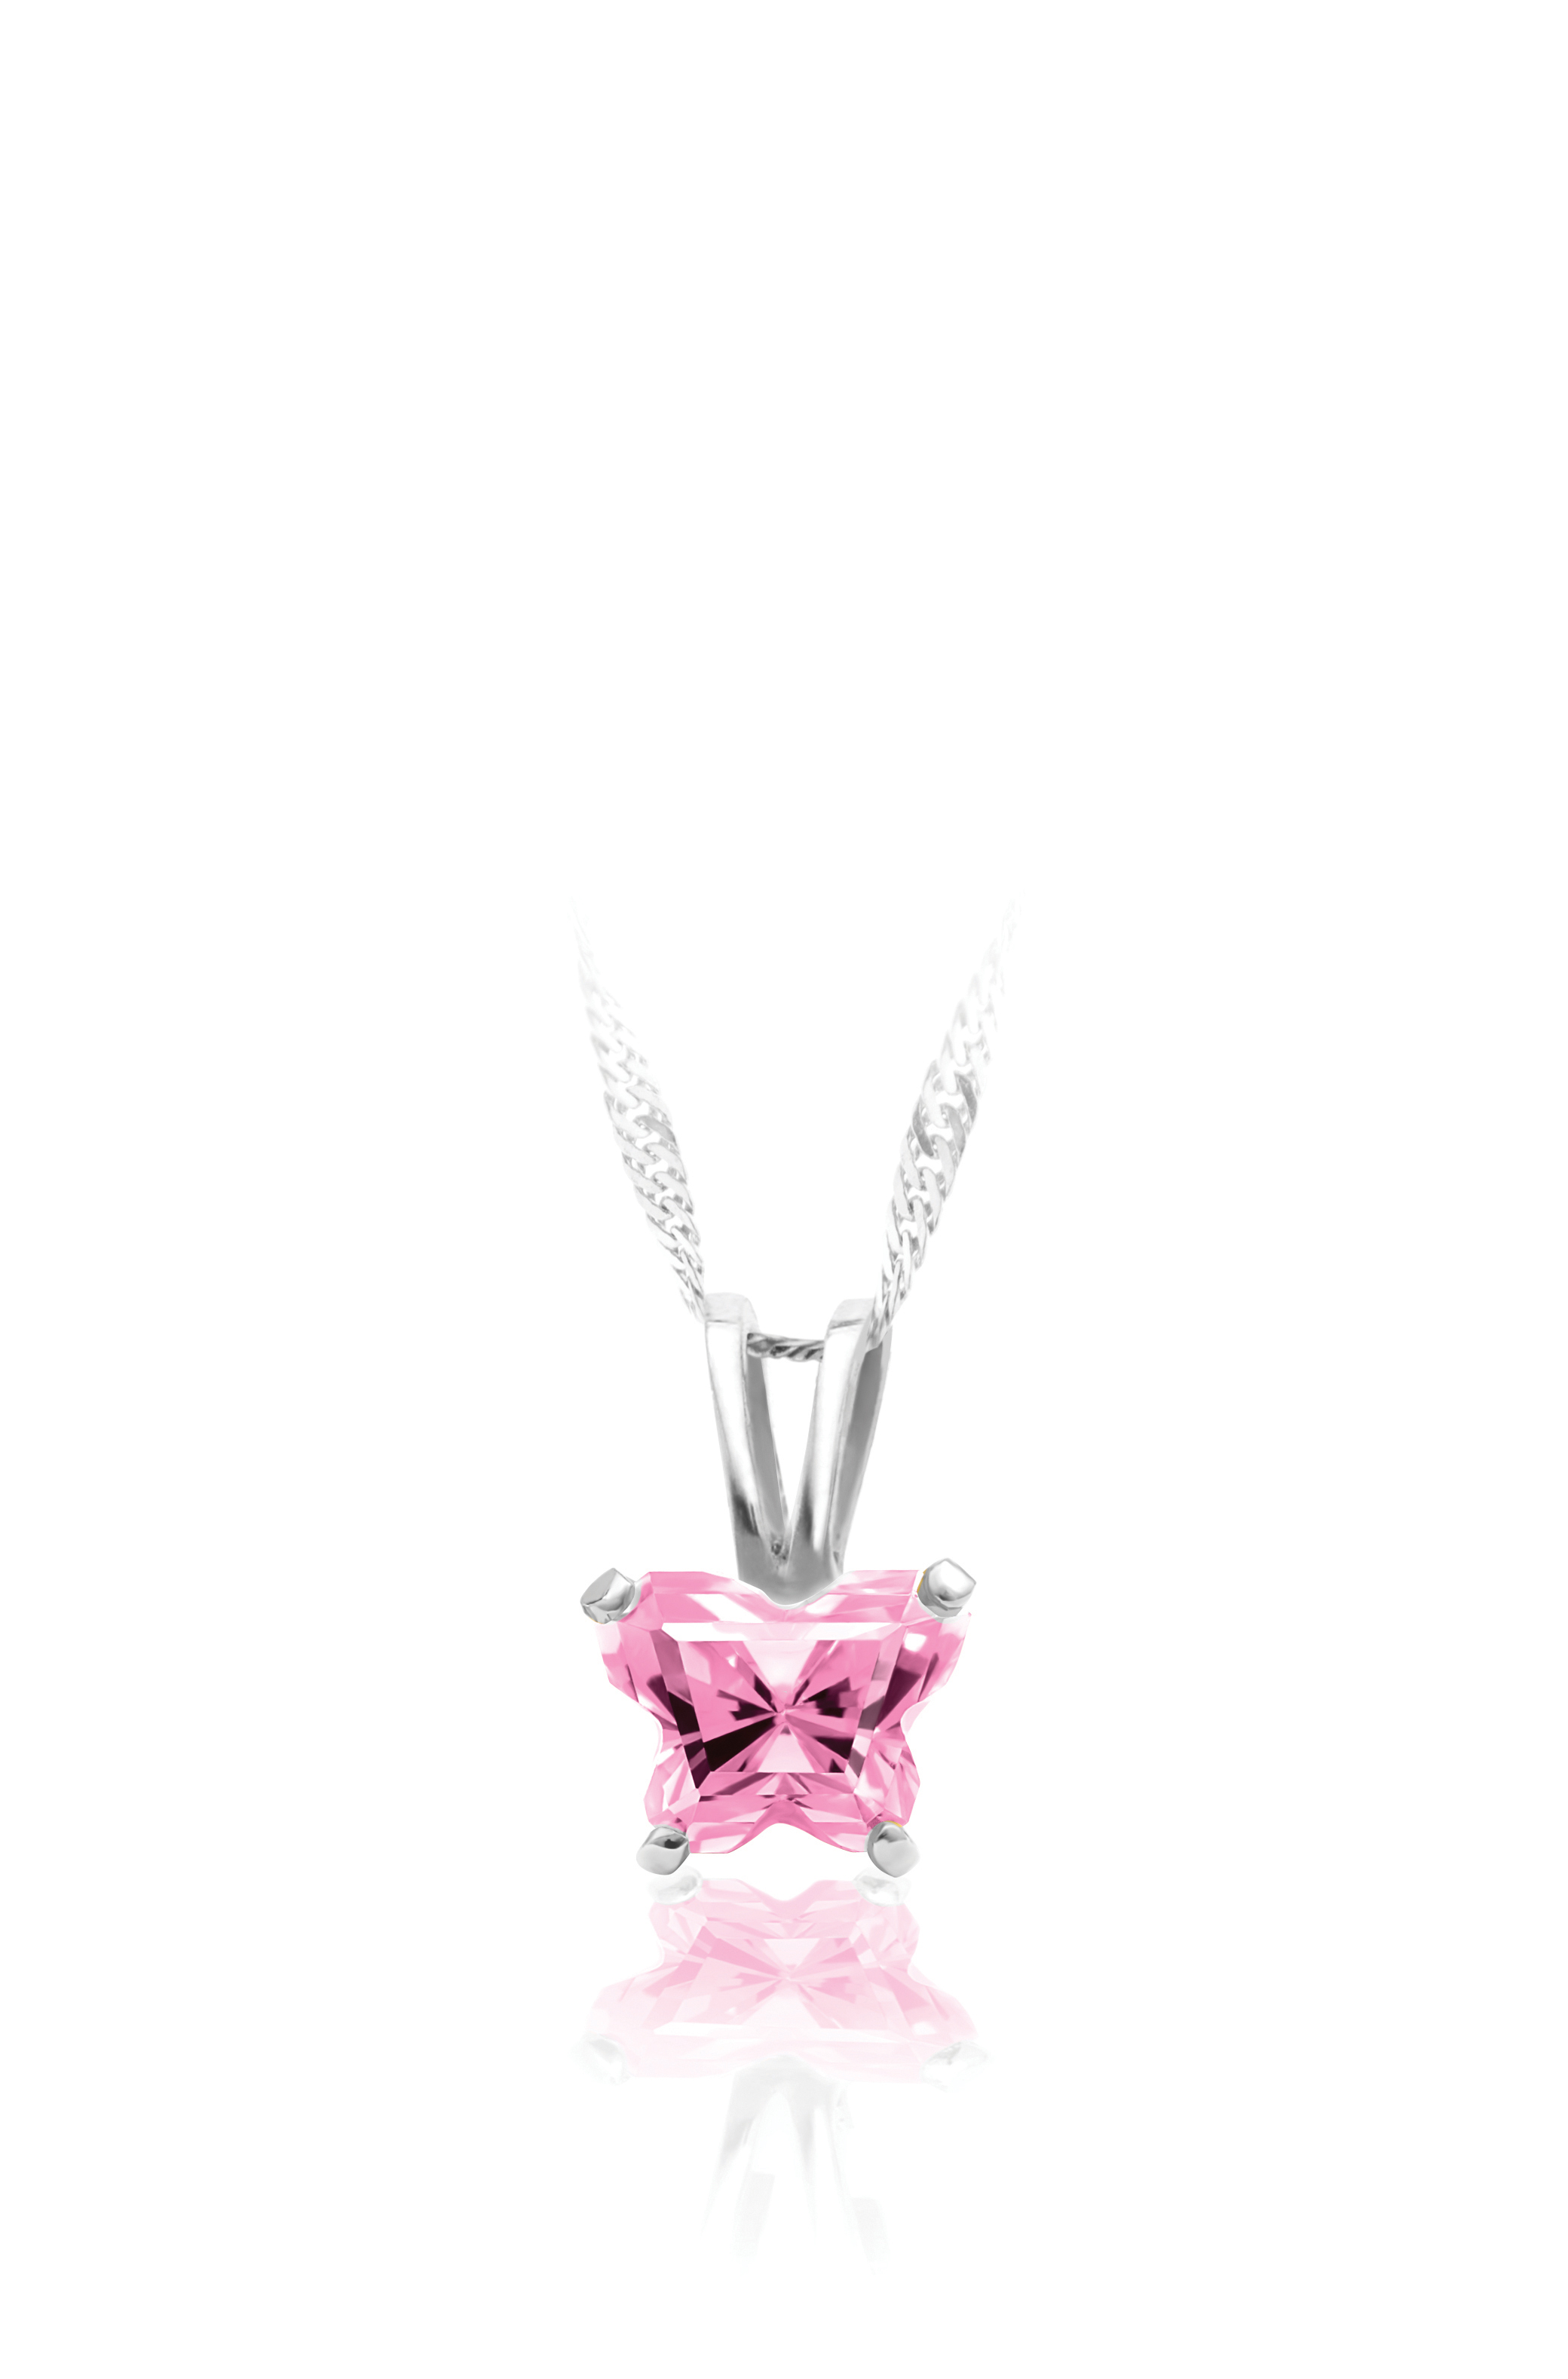 pendant for babies in sterling silver with light pink zirconia (month of October) - Chain included